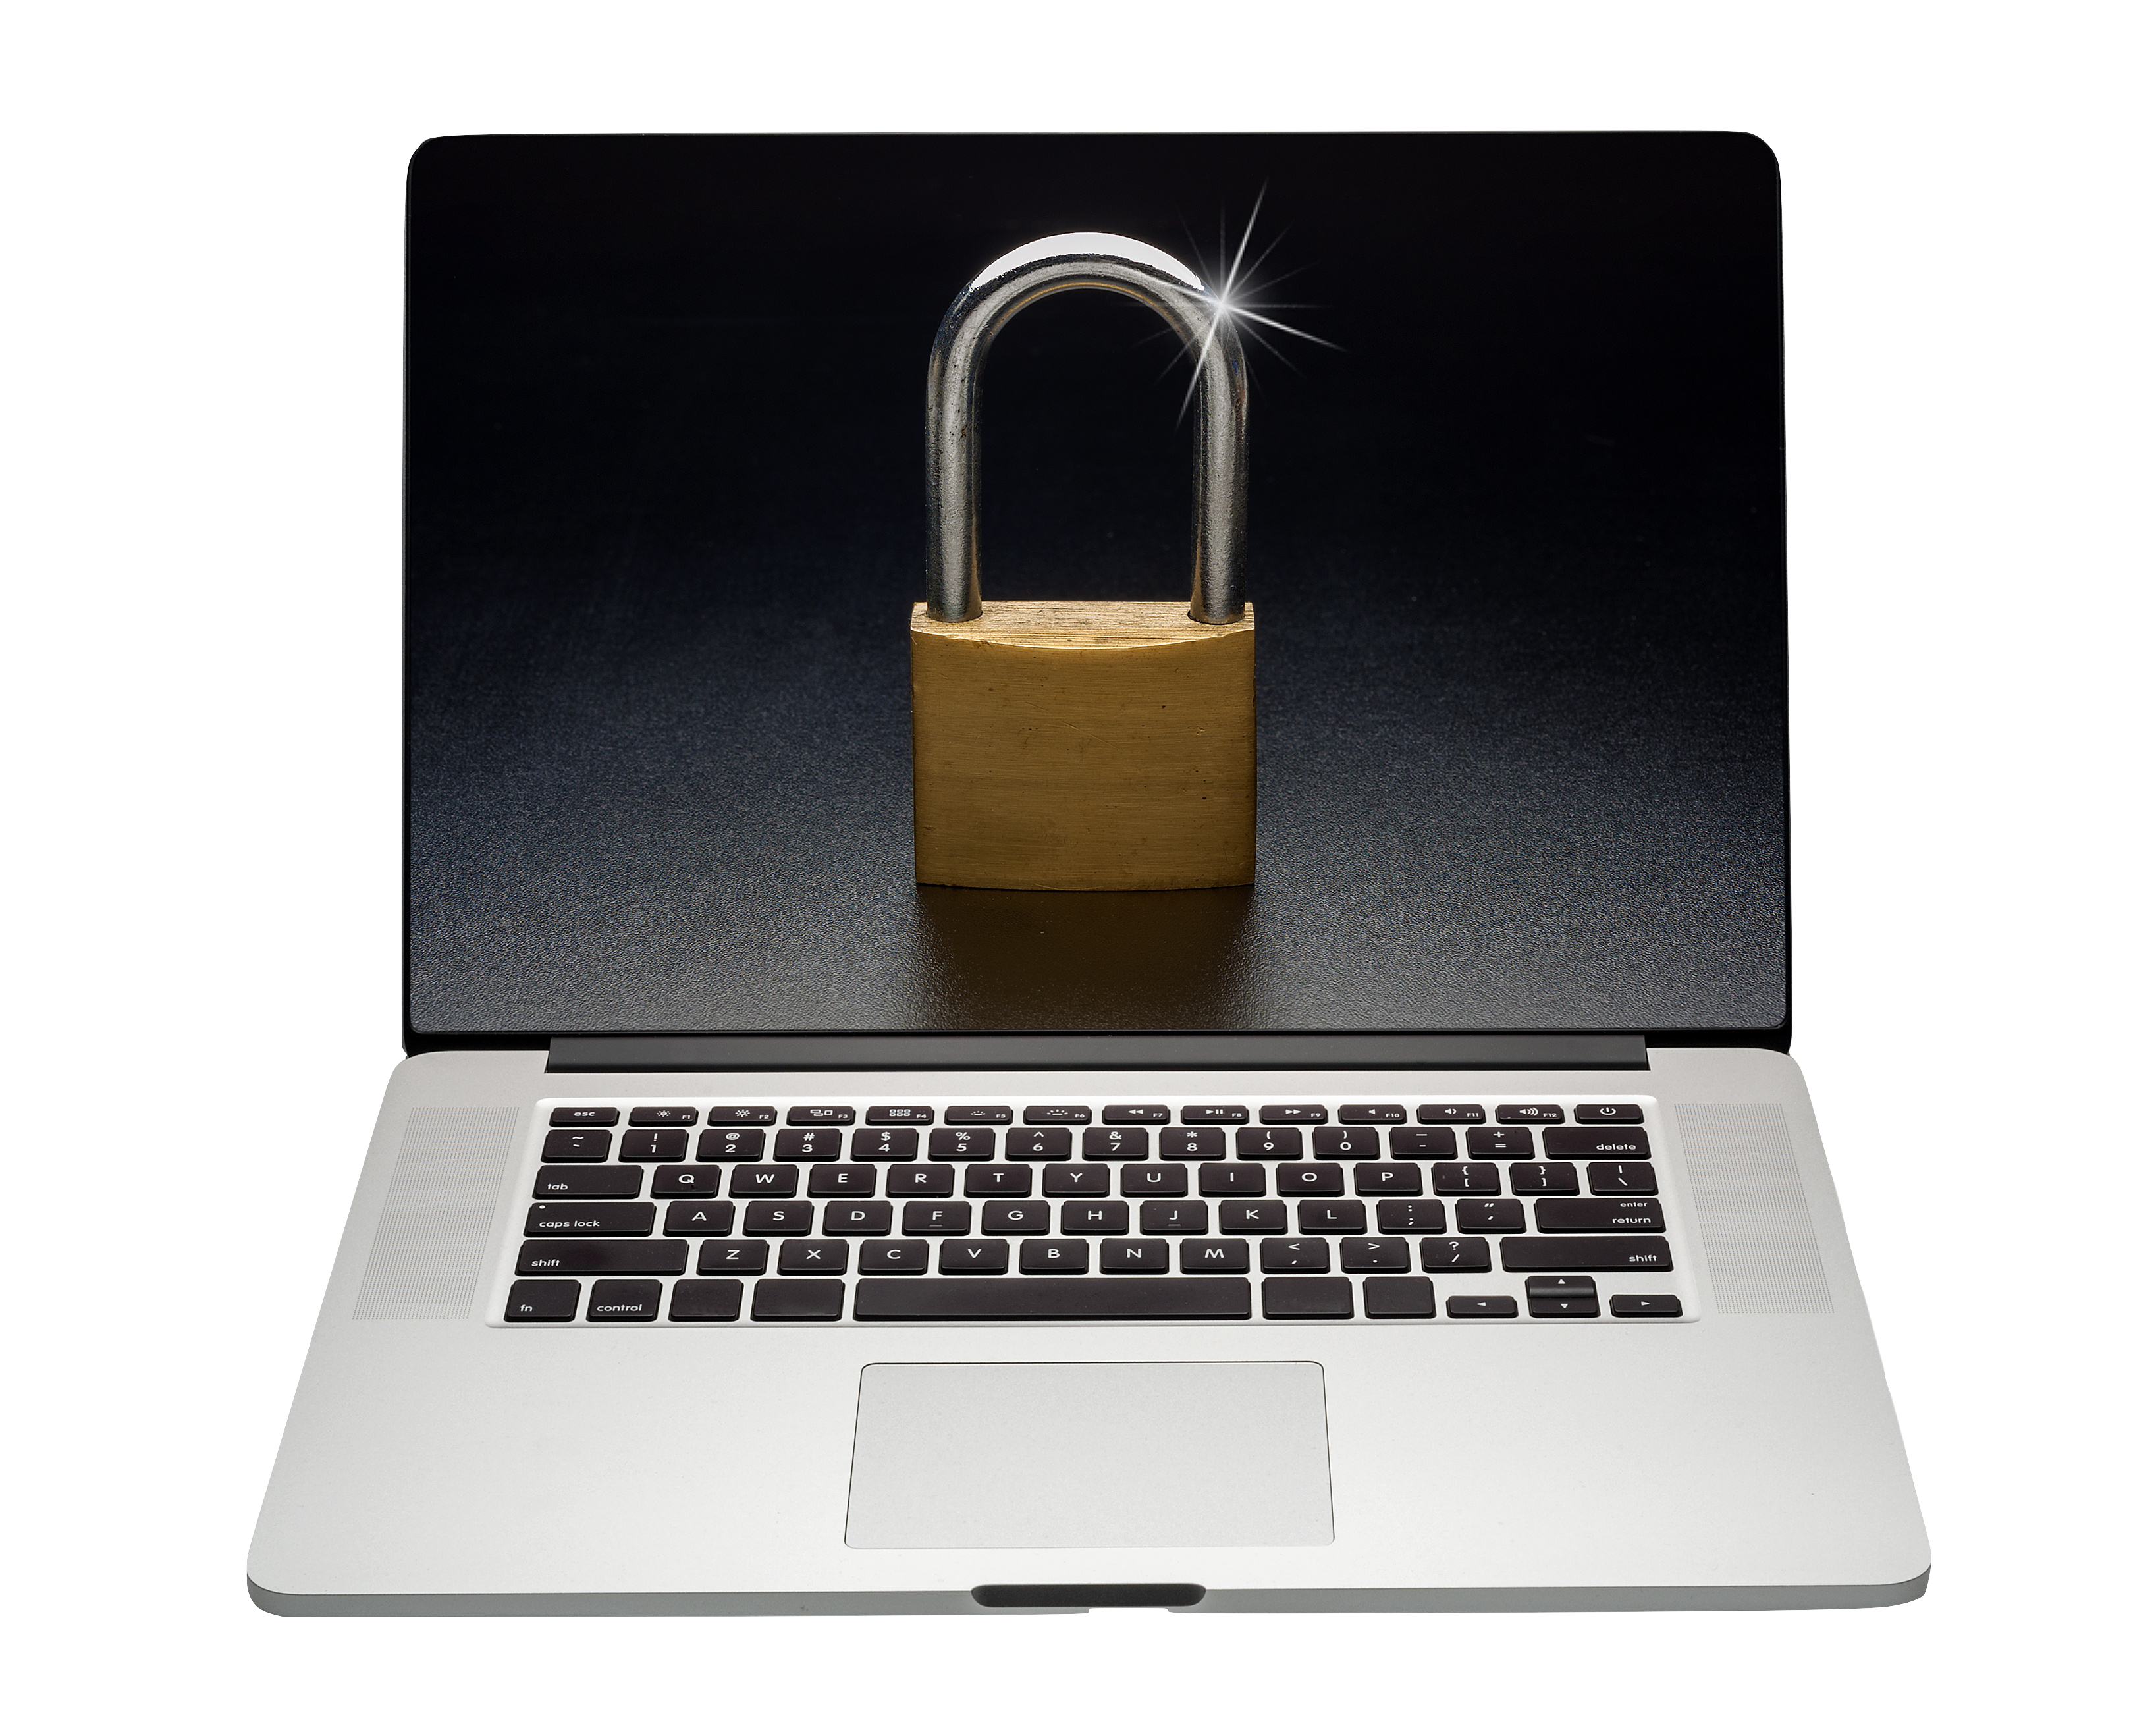 Cybersecurity: It's Getting a Little Better - All the Time